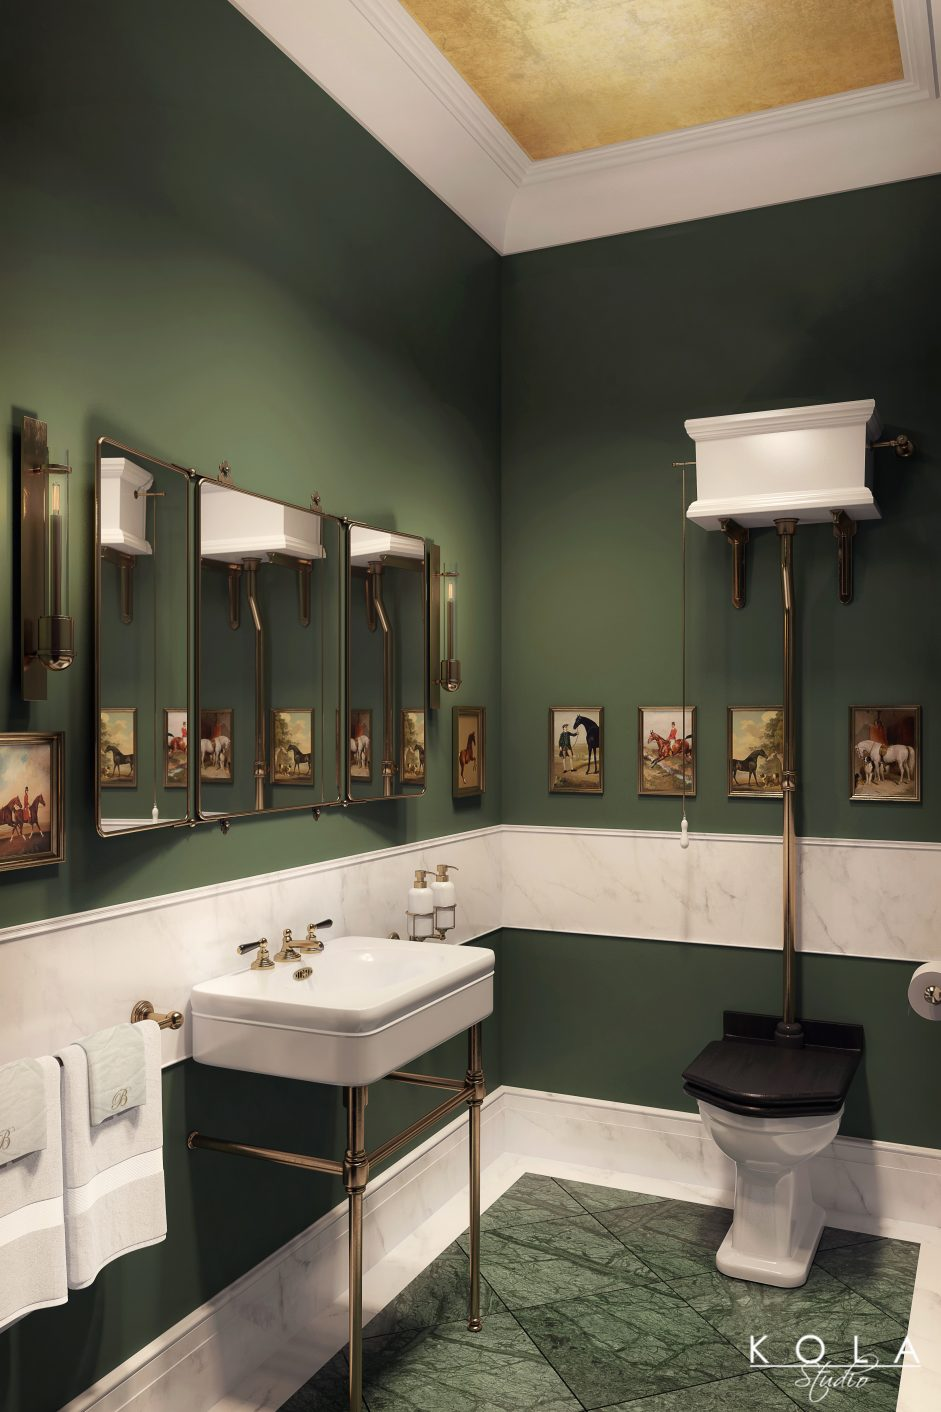 interior visualization of a classic british style bathroom in dark colours